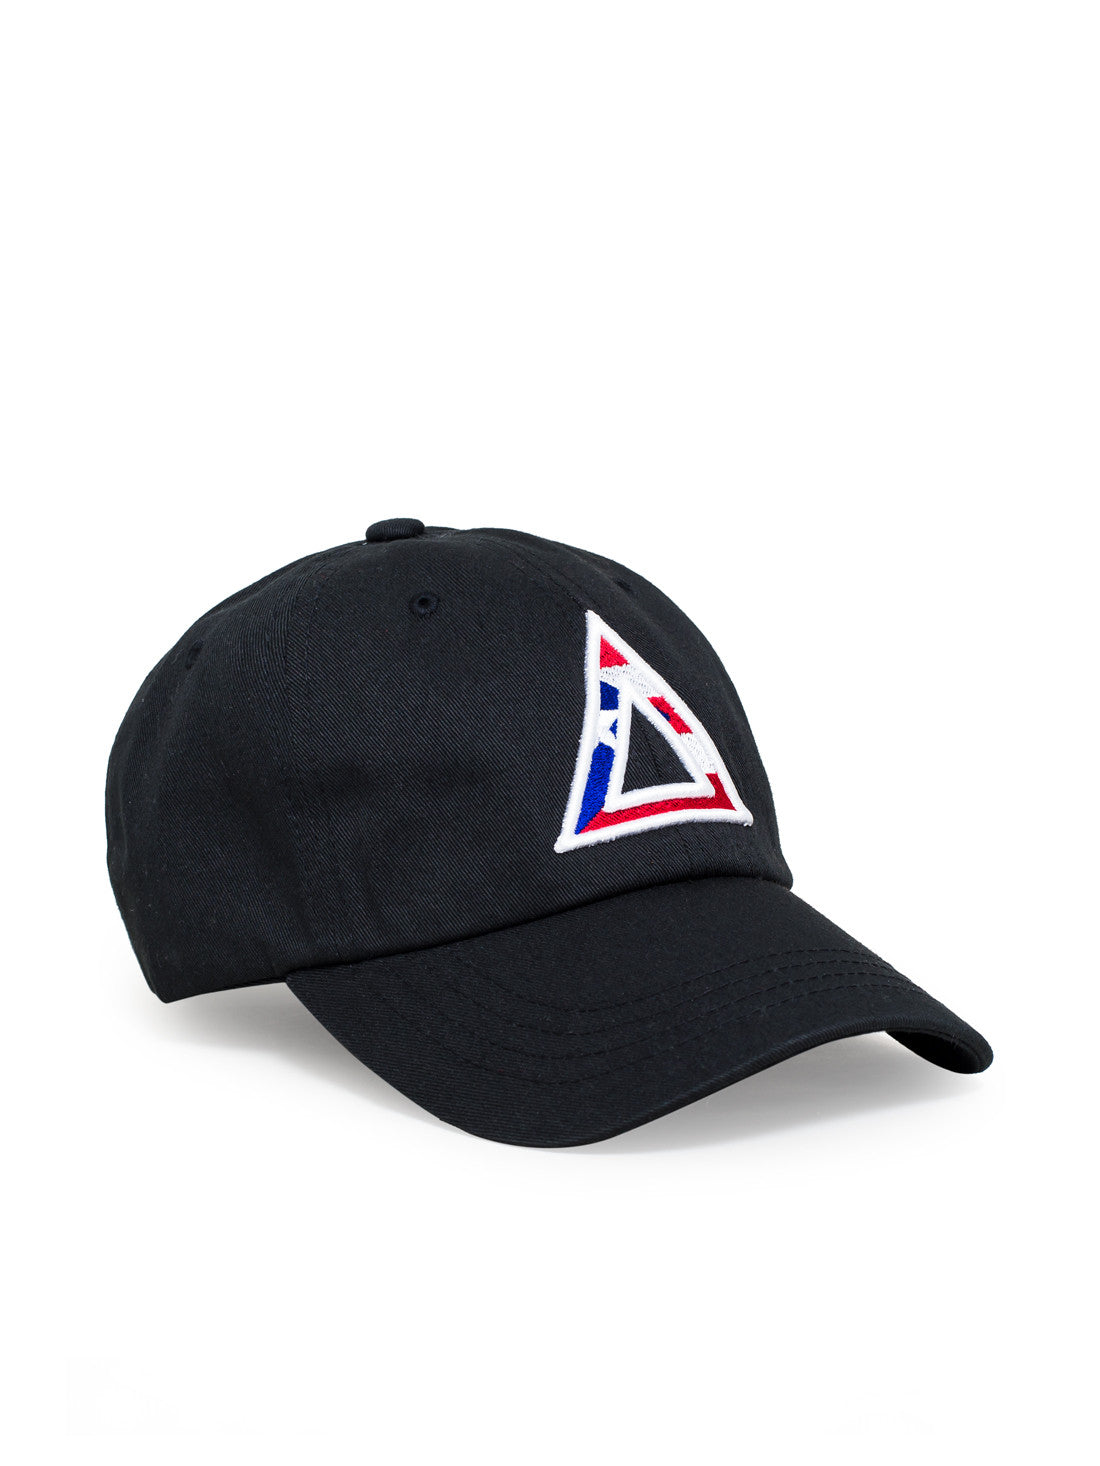 Dad hat black - Borikua Tri